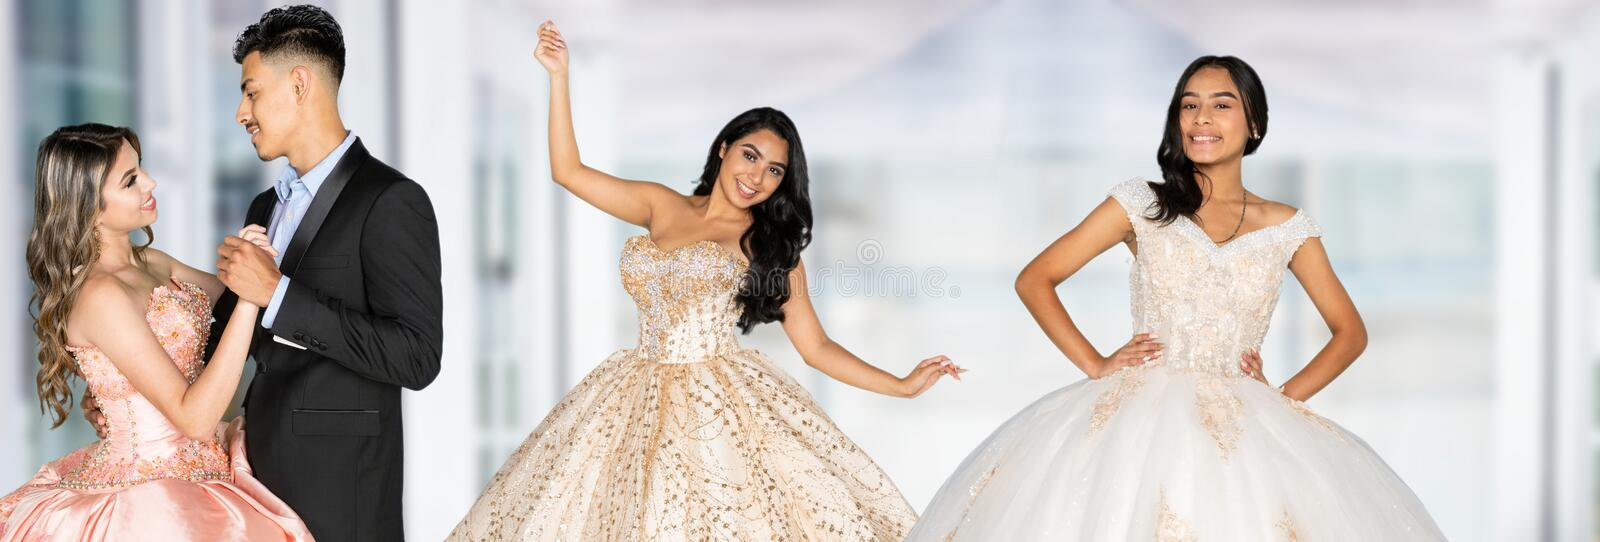 Teen Girls At Quinceanera. Teen hispanic girl going to her quinceanera or prom stock images